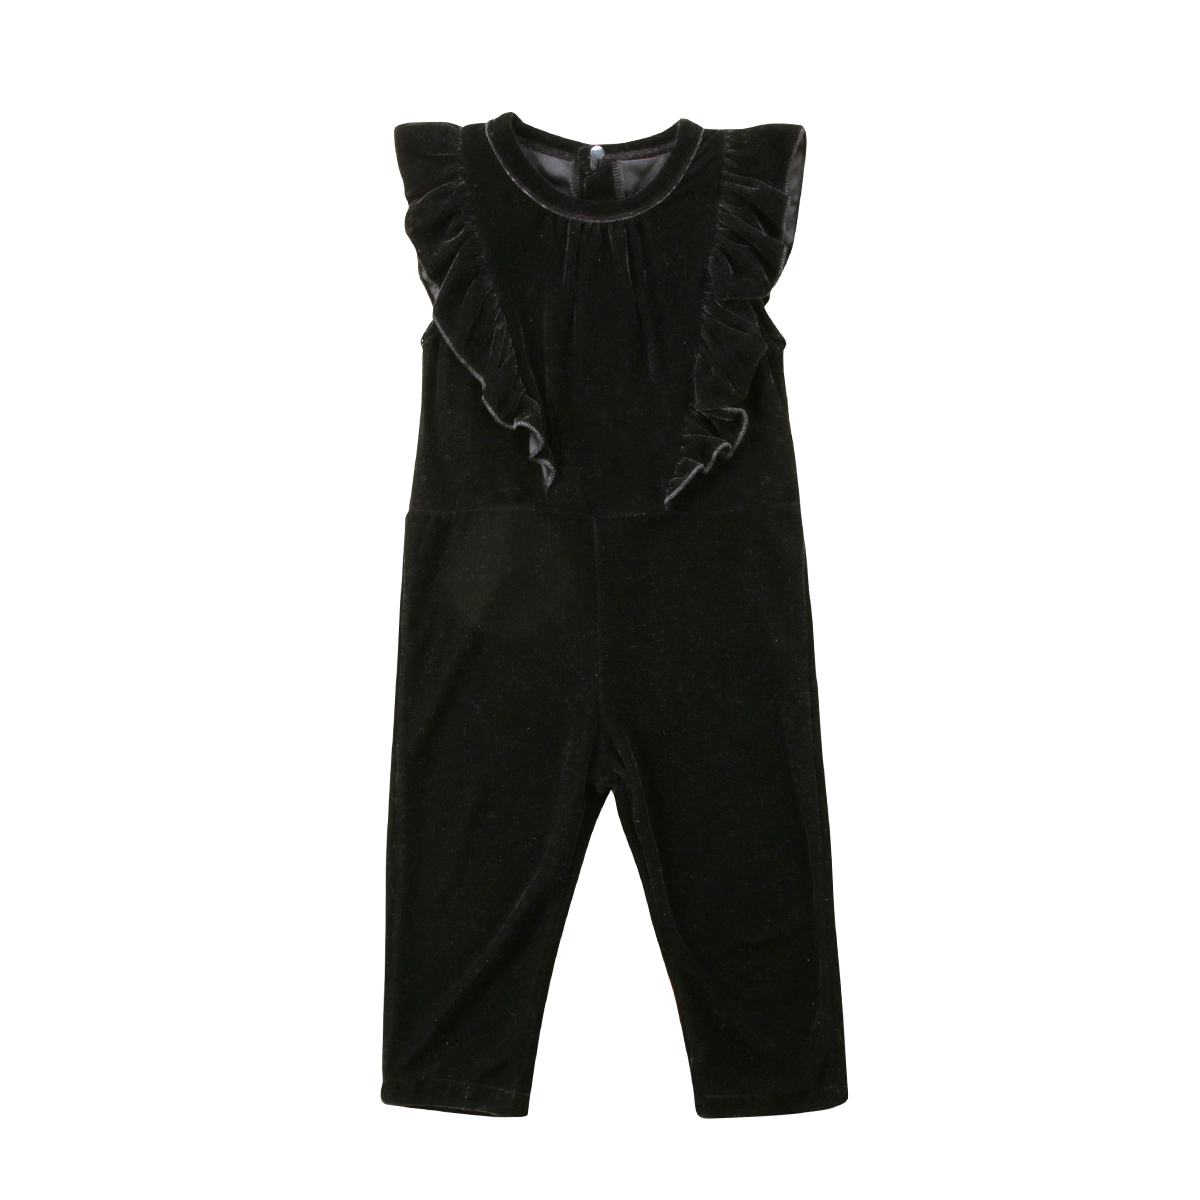 Pretty Toddler Baby Kids Girls Velvet Ruffle   Romper   Jumpsuit Long Trousers Outfits Baby Girl Black   Rompers   Clothes